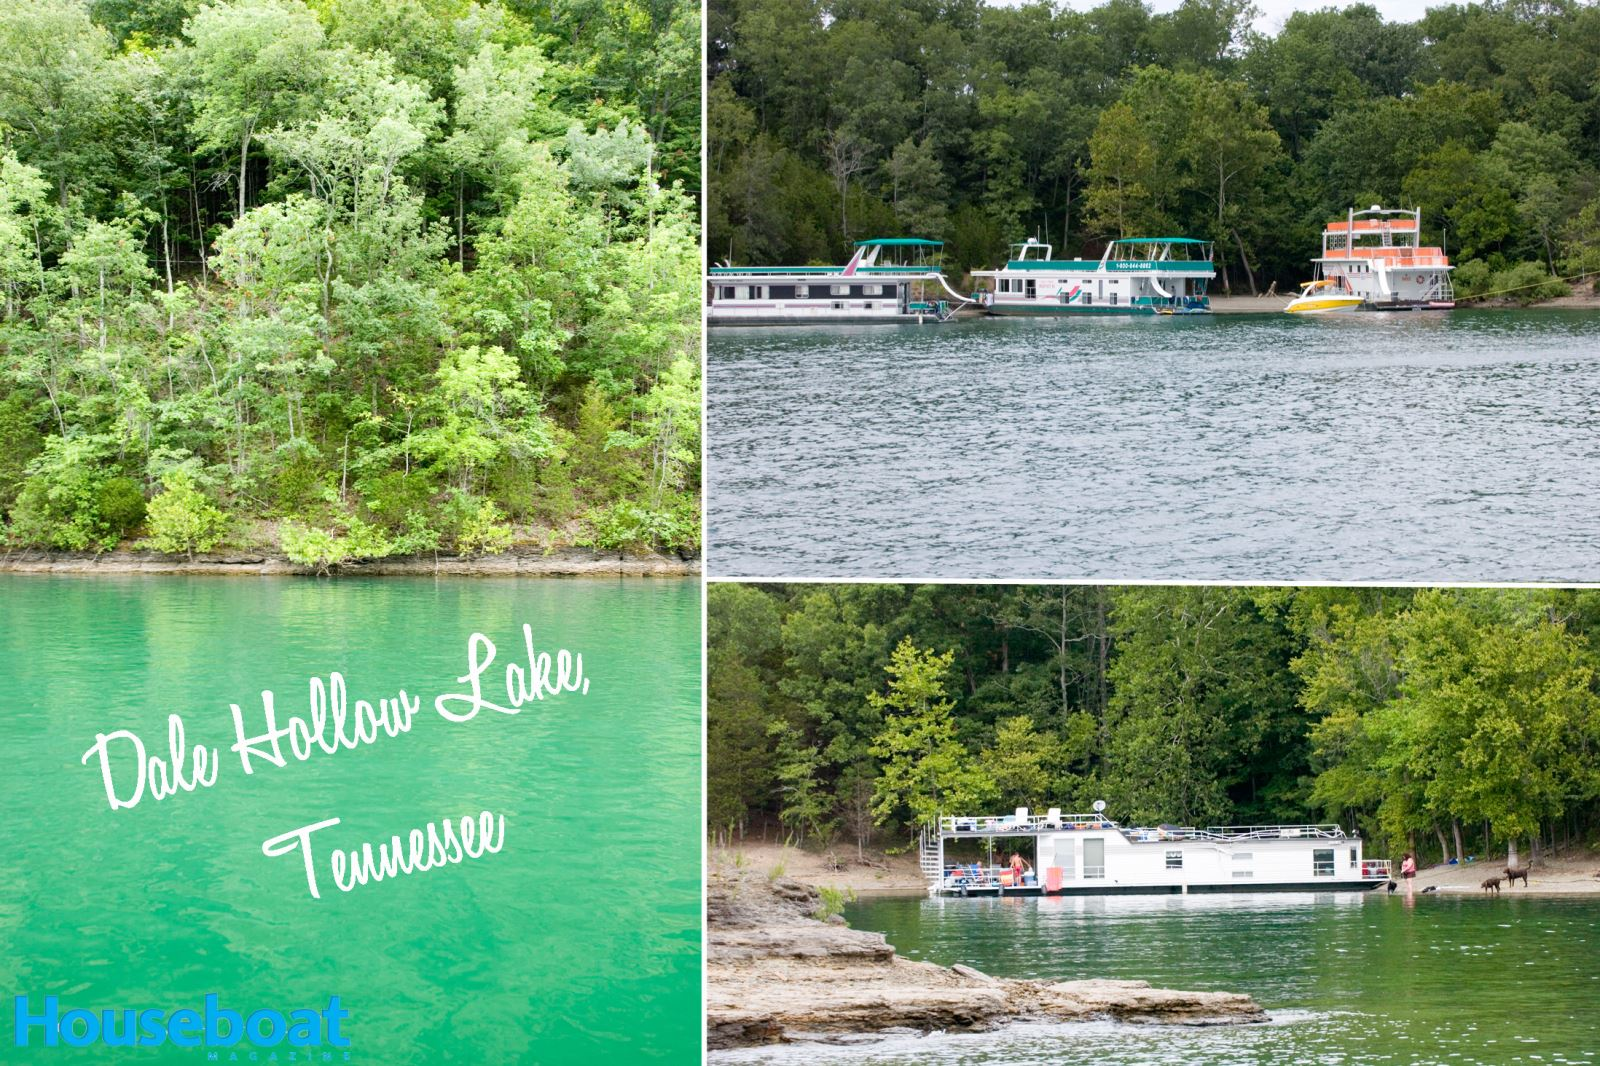 Top 10 Best Houseboating Lakes in the United States